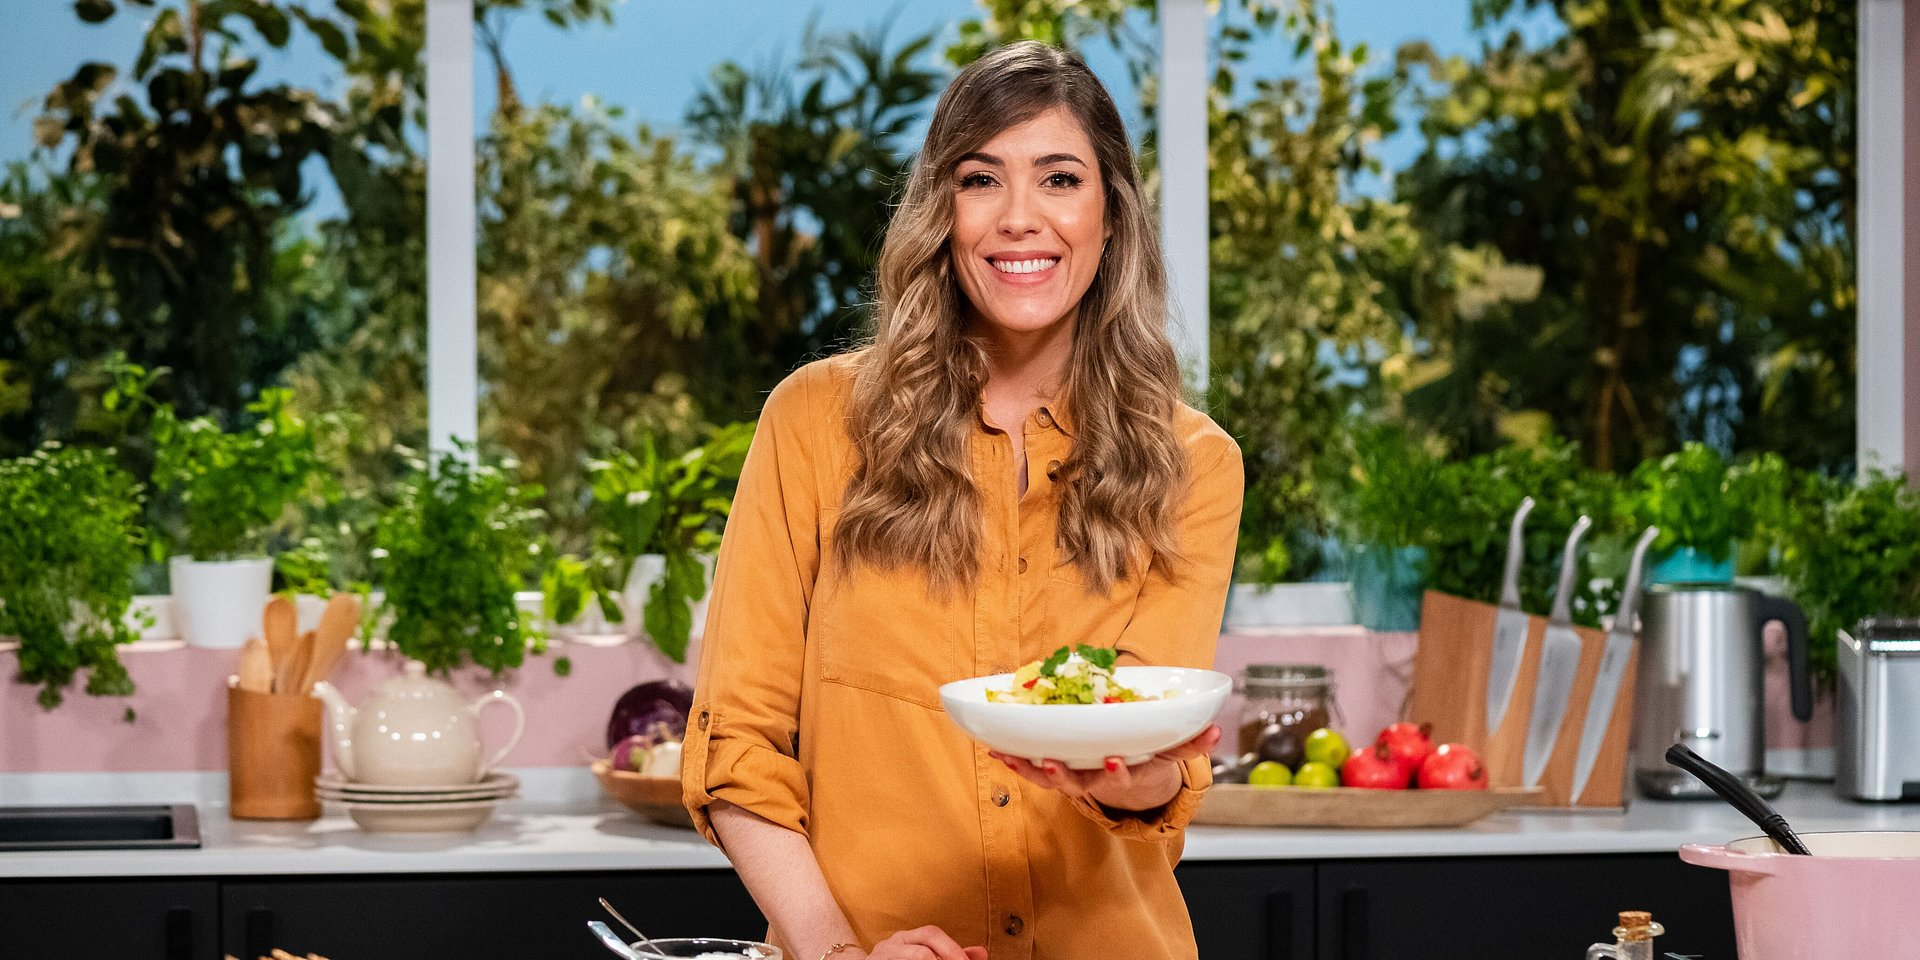 'NATURALMENTE': O NOVO PROGRAMA DO 24 KITCHEN COM IARA RODRIGUES